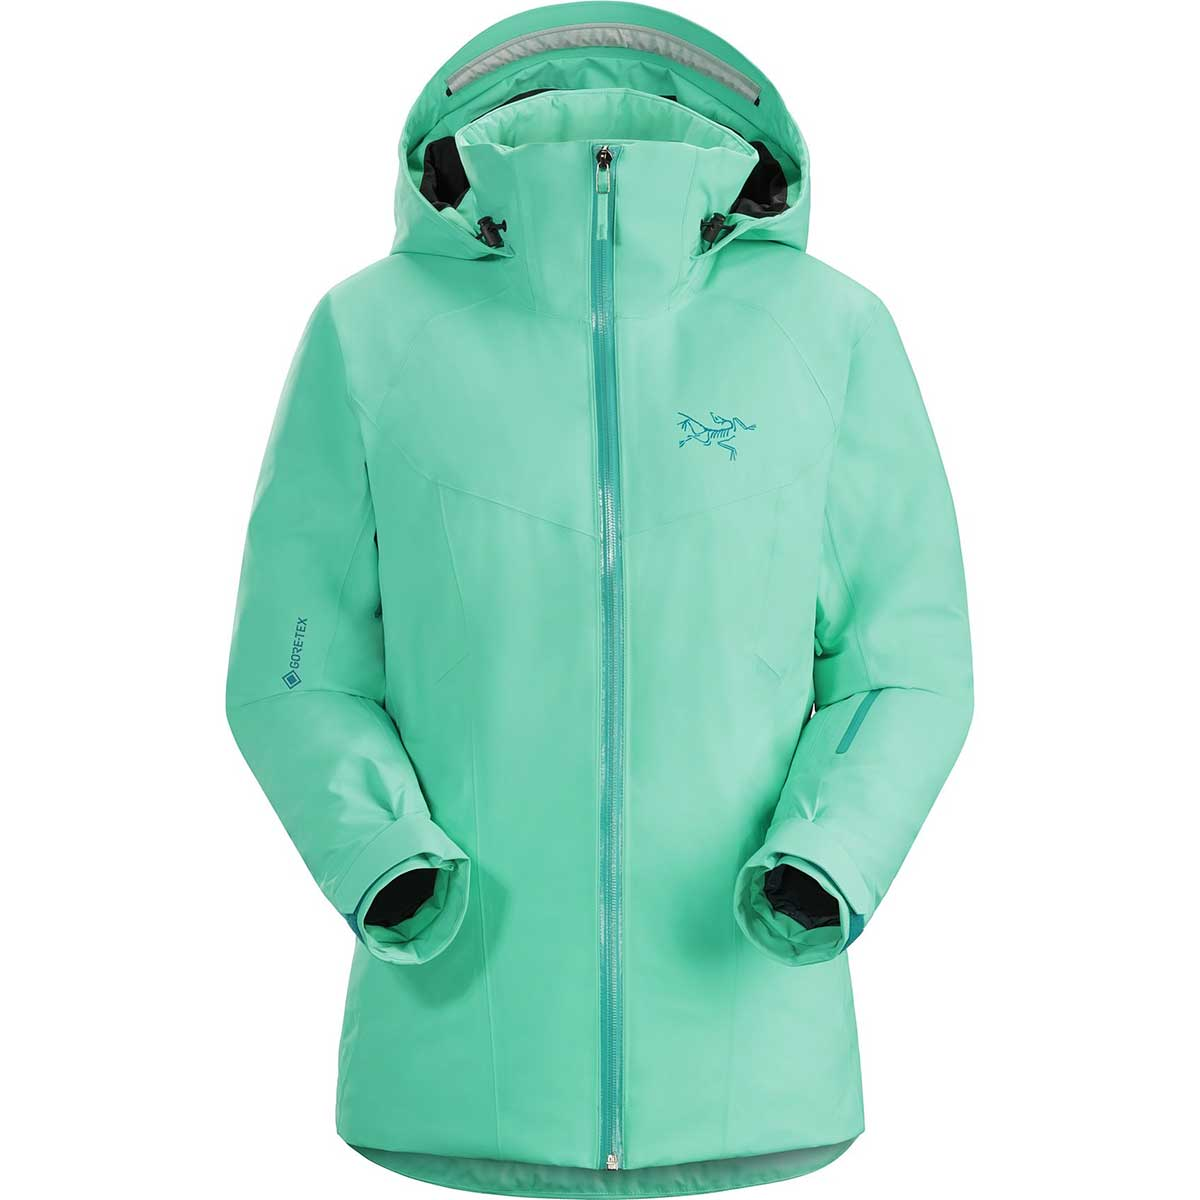 Arc'teryx Women's Tiya Jacket in Dark Illucinate